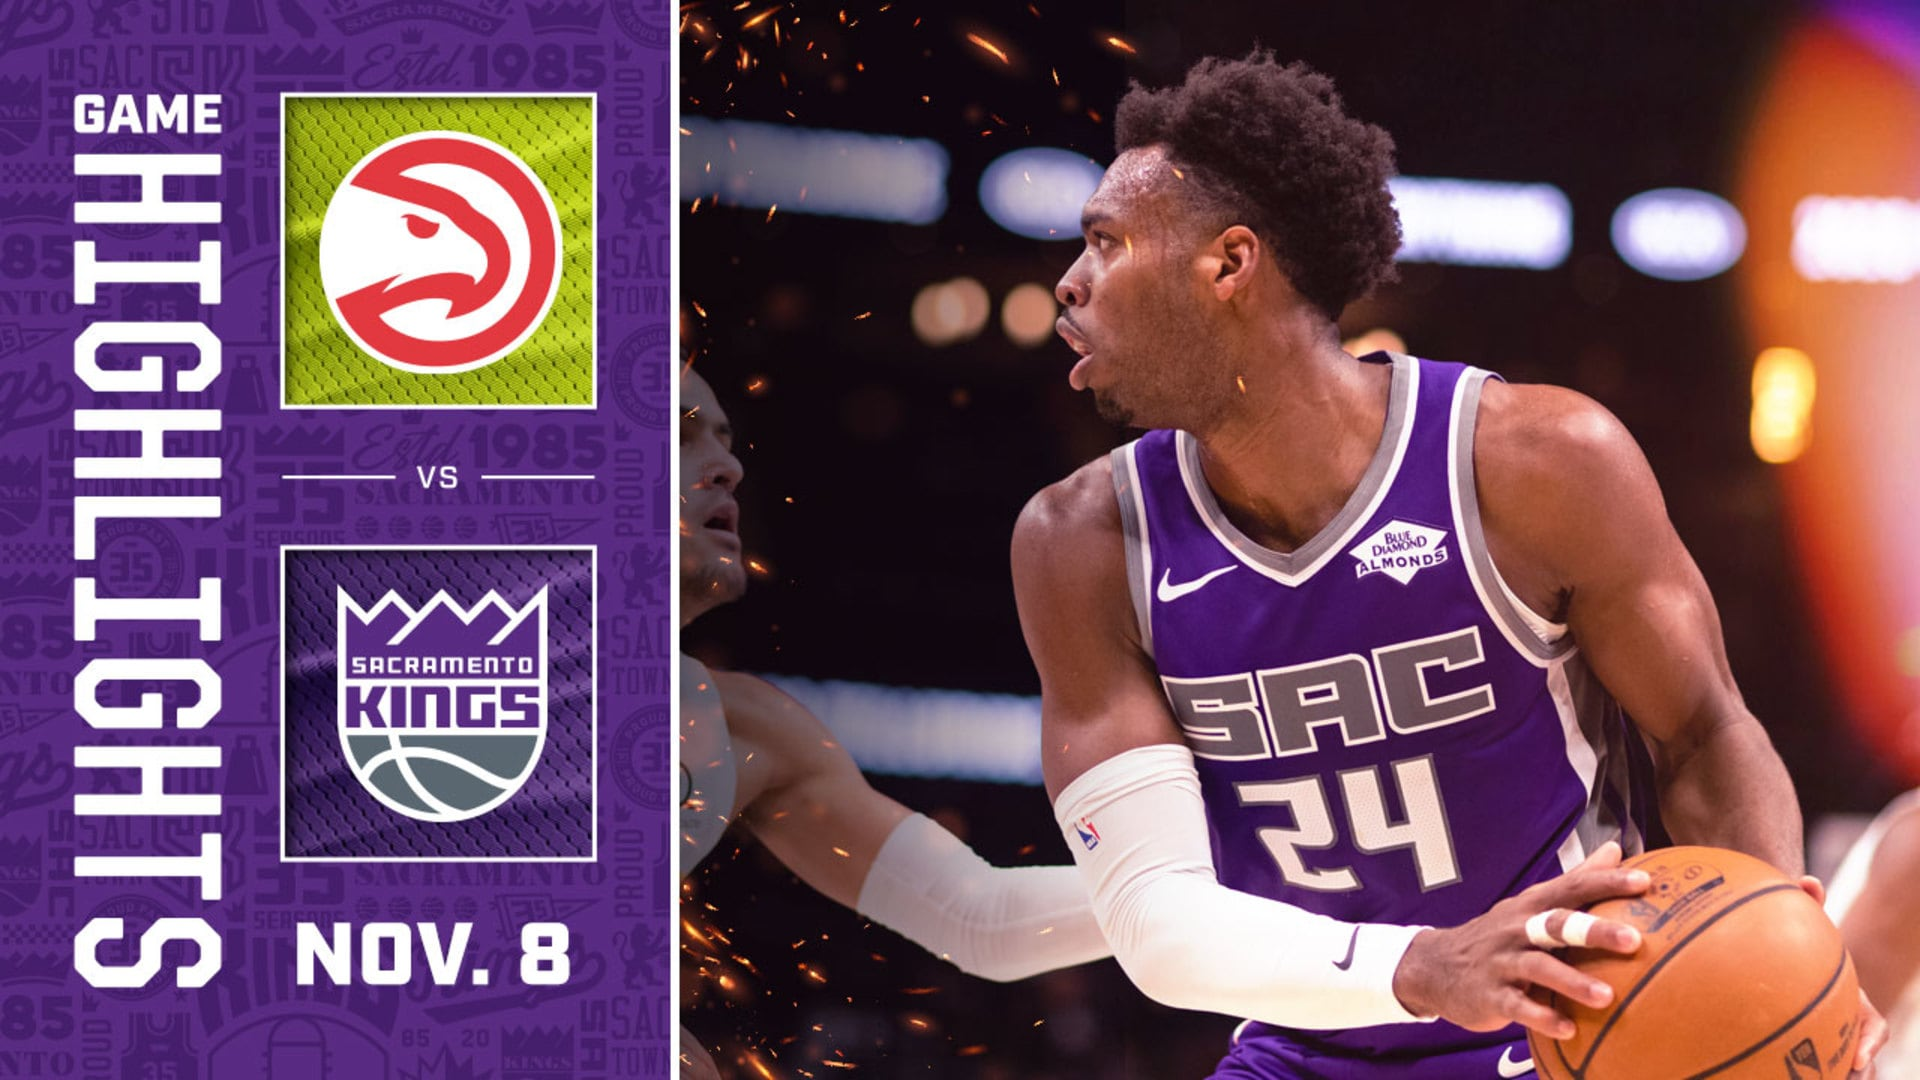 Kings Close Out Road Swing in Strong Fashion | Kings vs Hawks Highlights